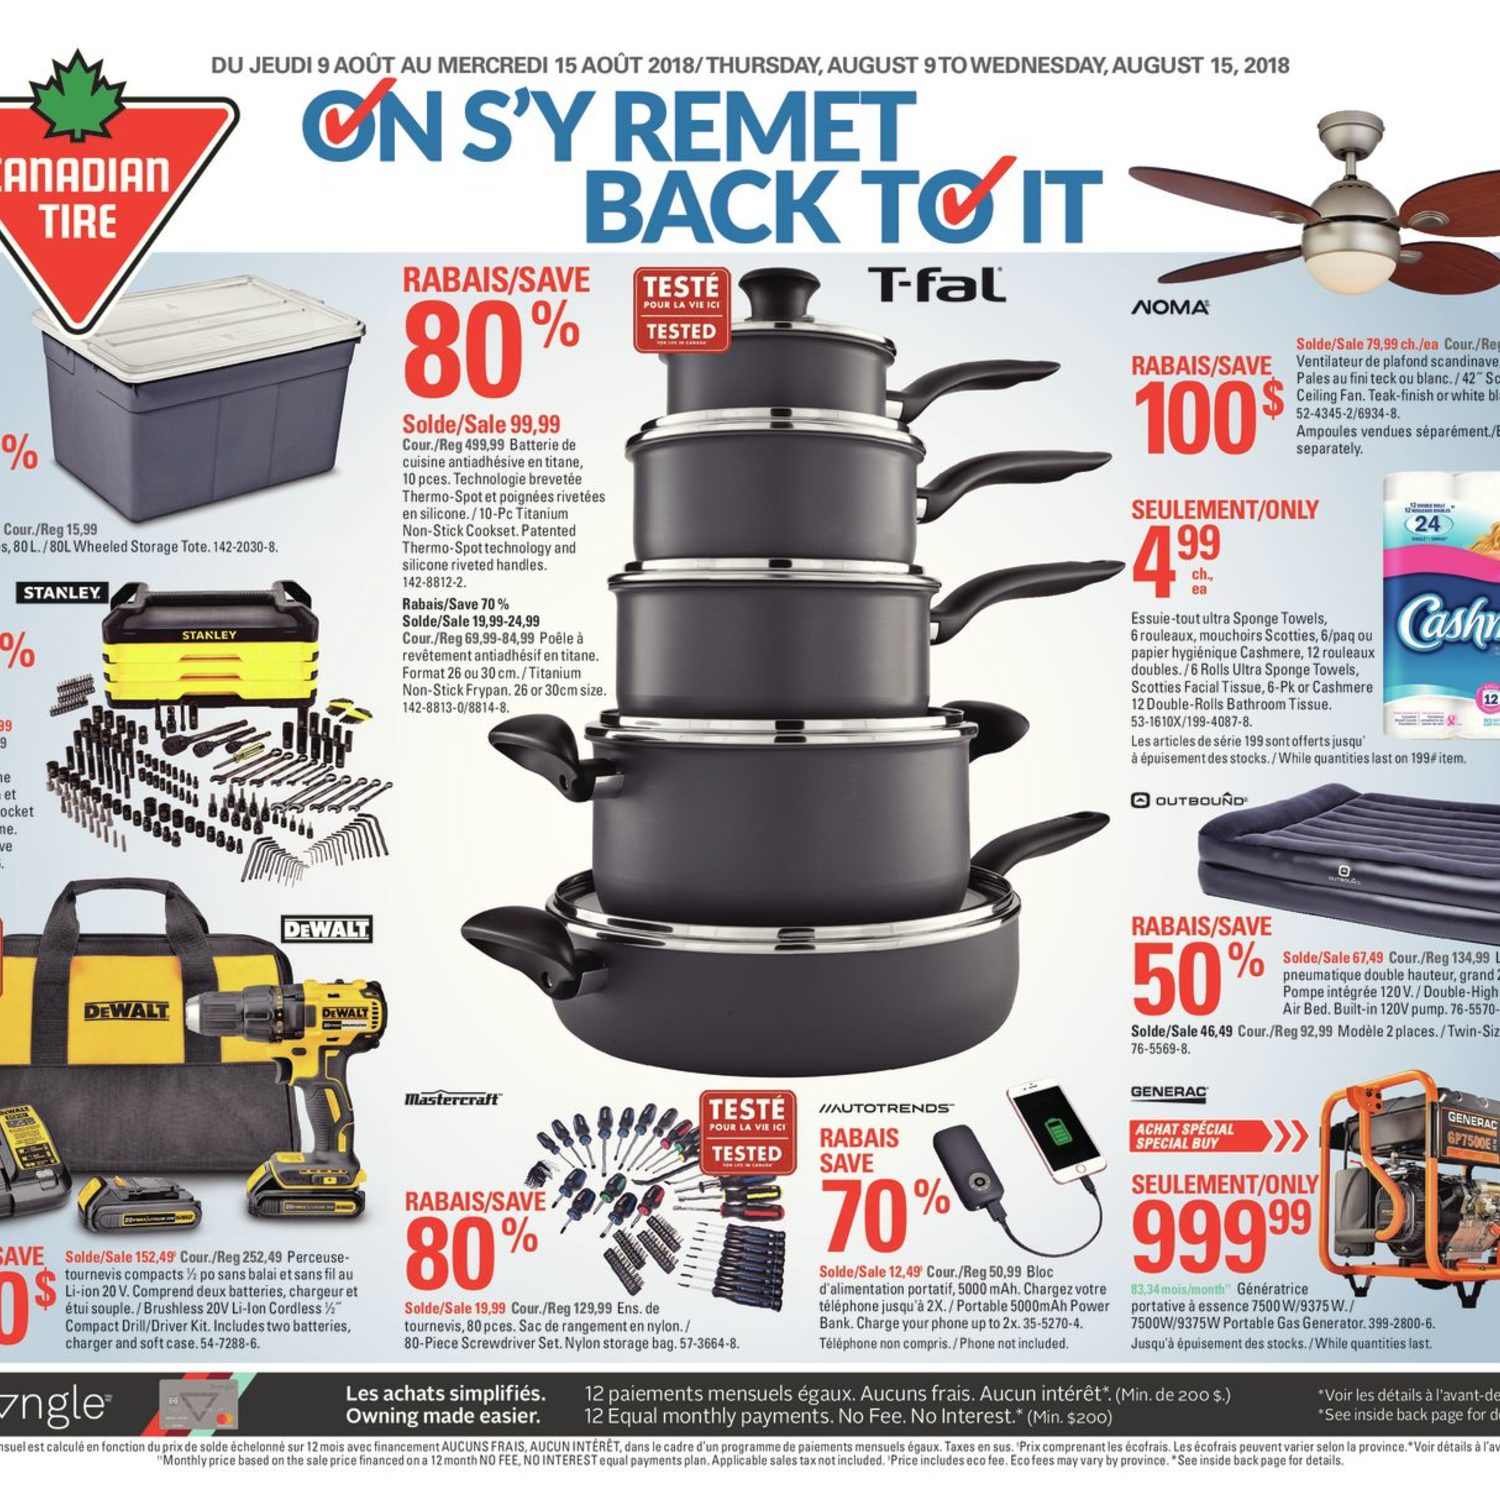 Canadian Tire Weekly Flyer Weekly Back To It Aug 9